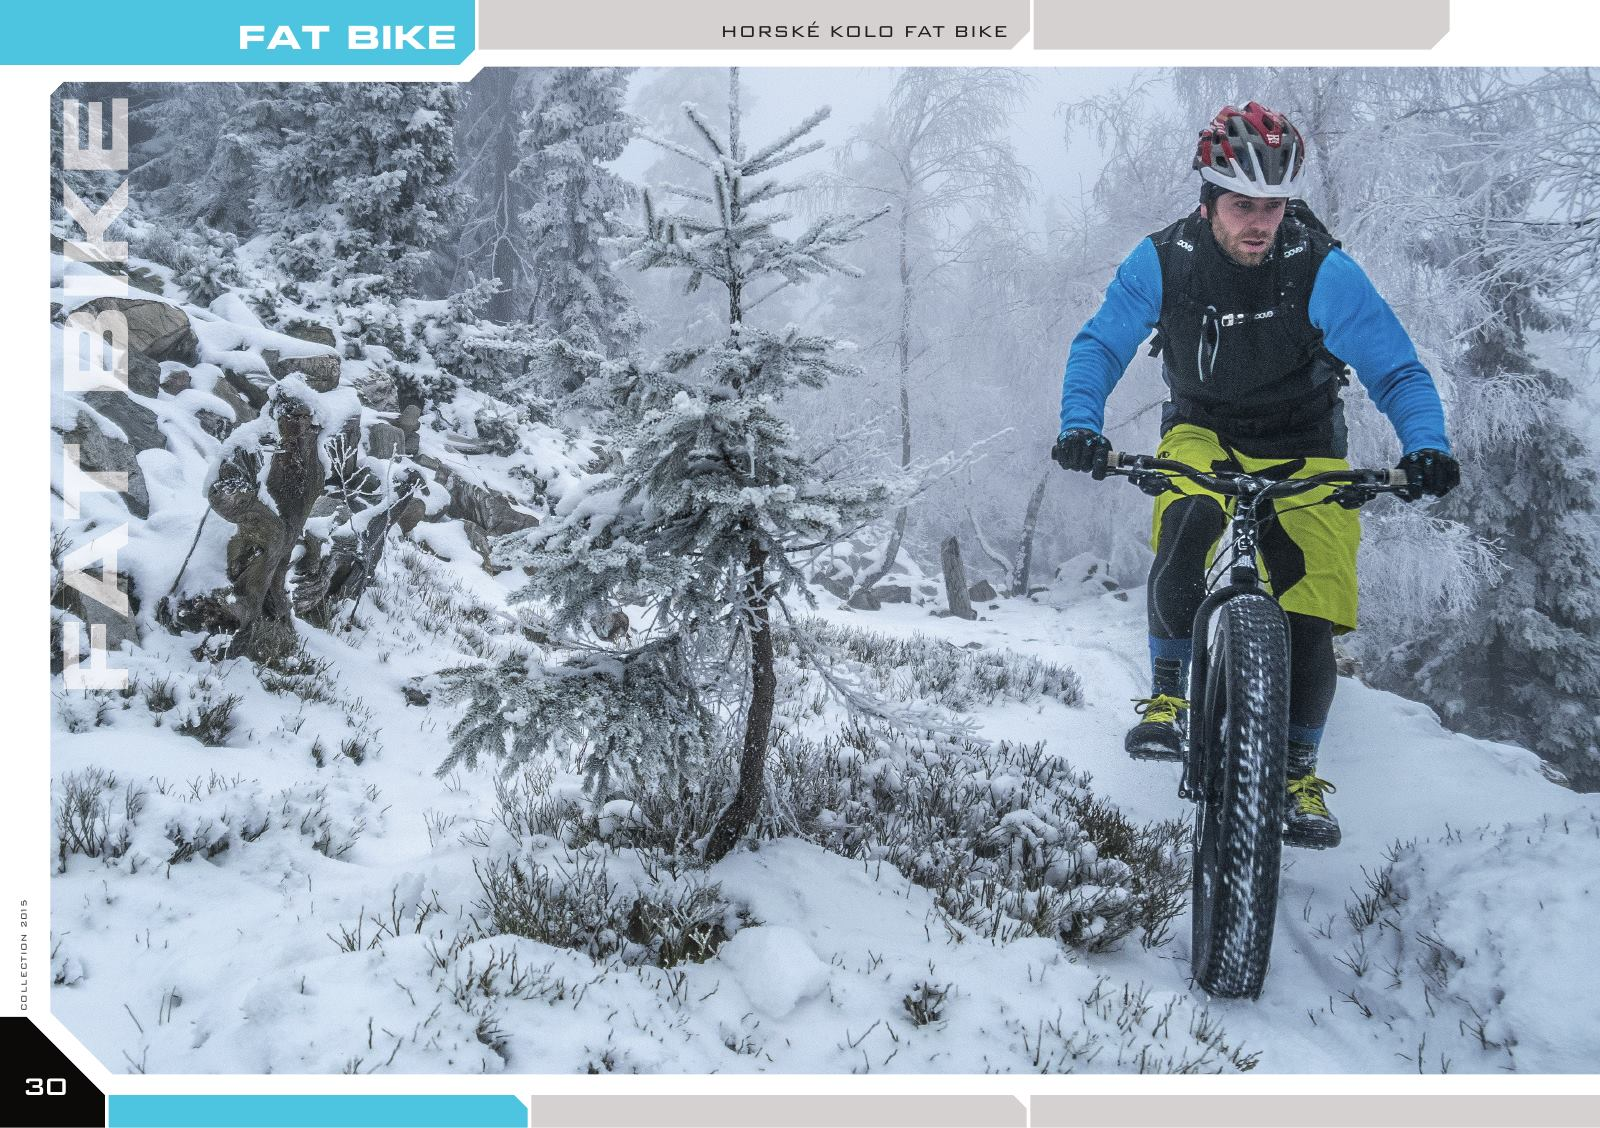 FAT BIKE - horské kolo FAT BIKE